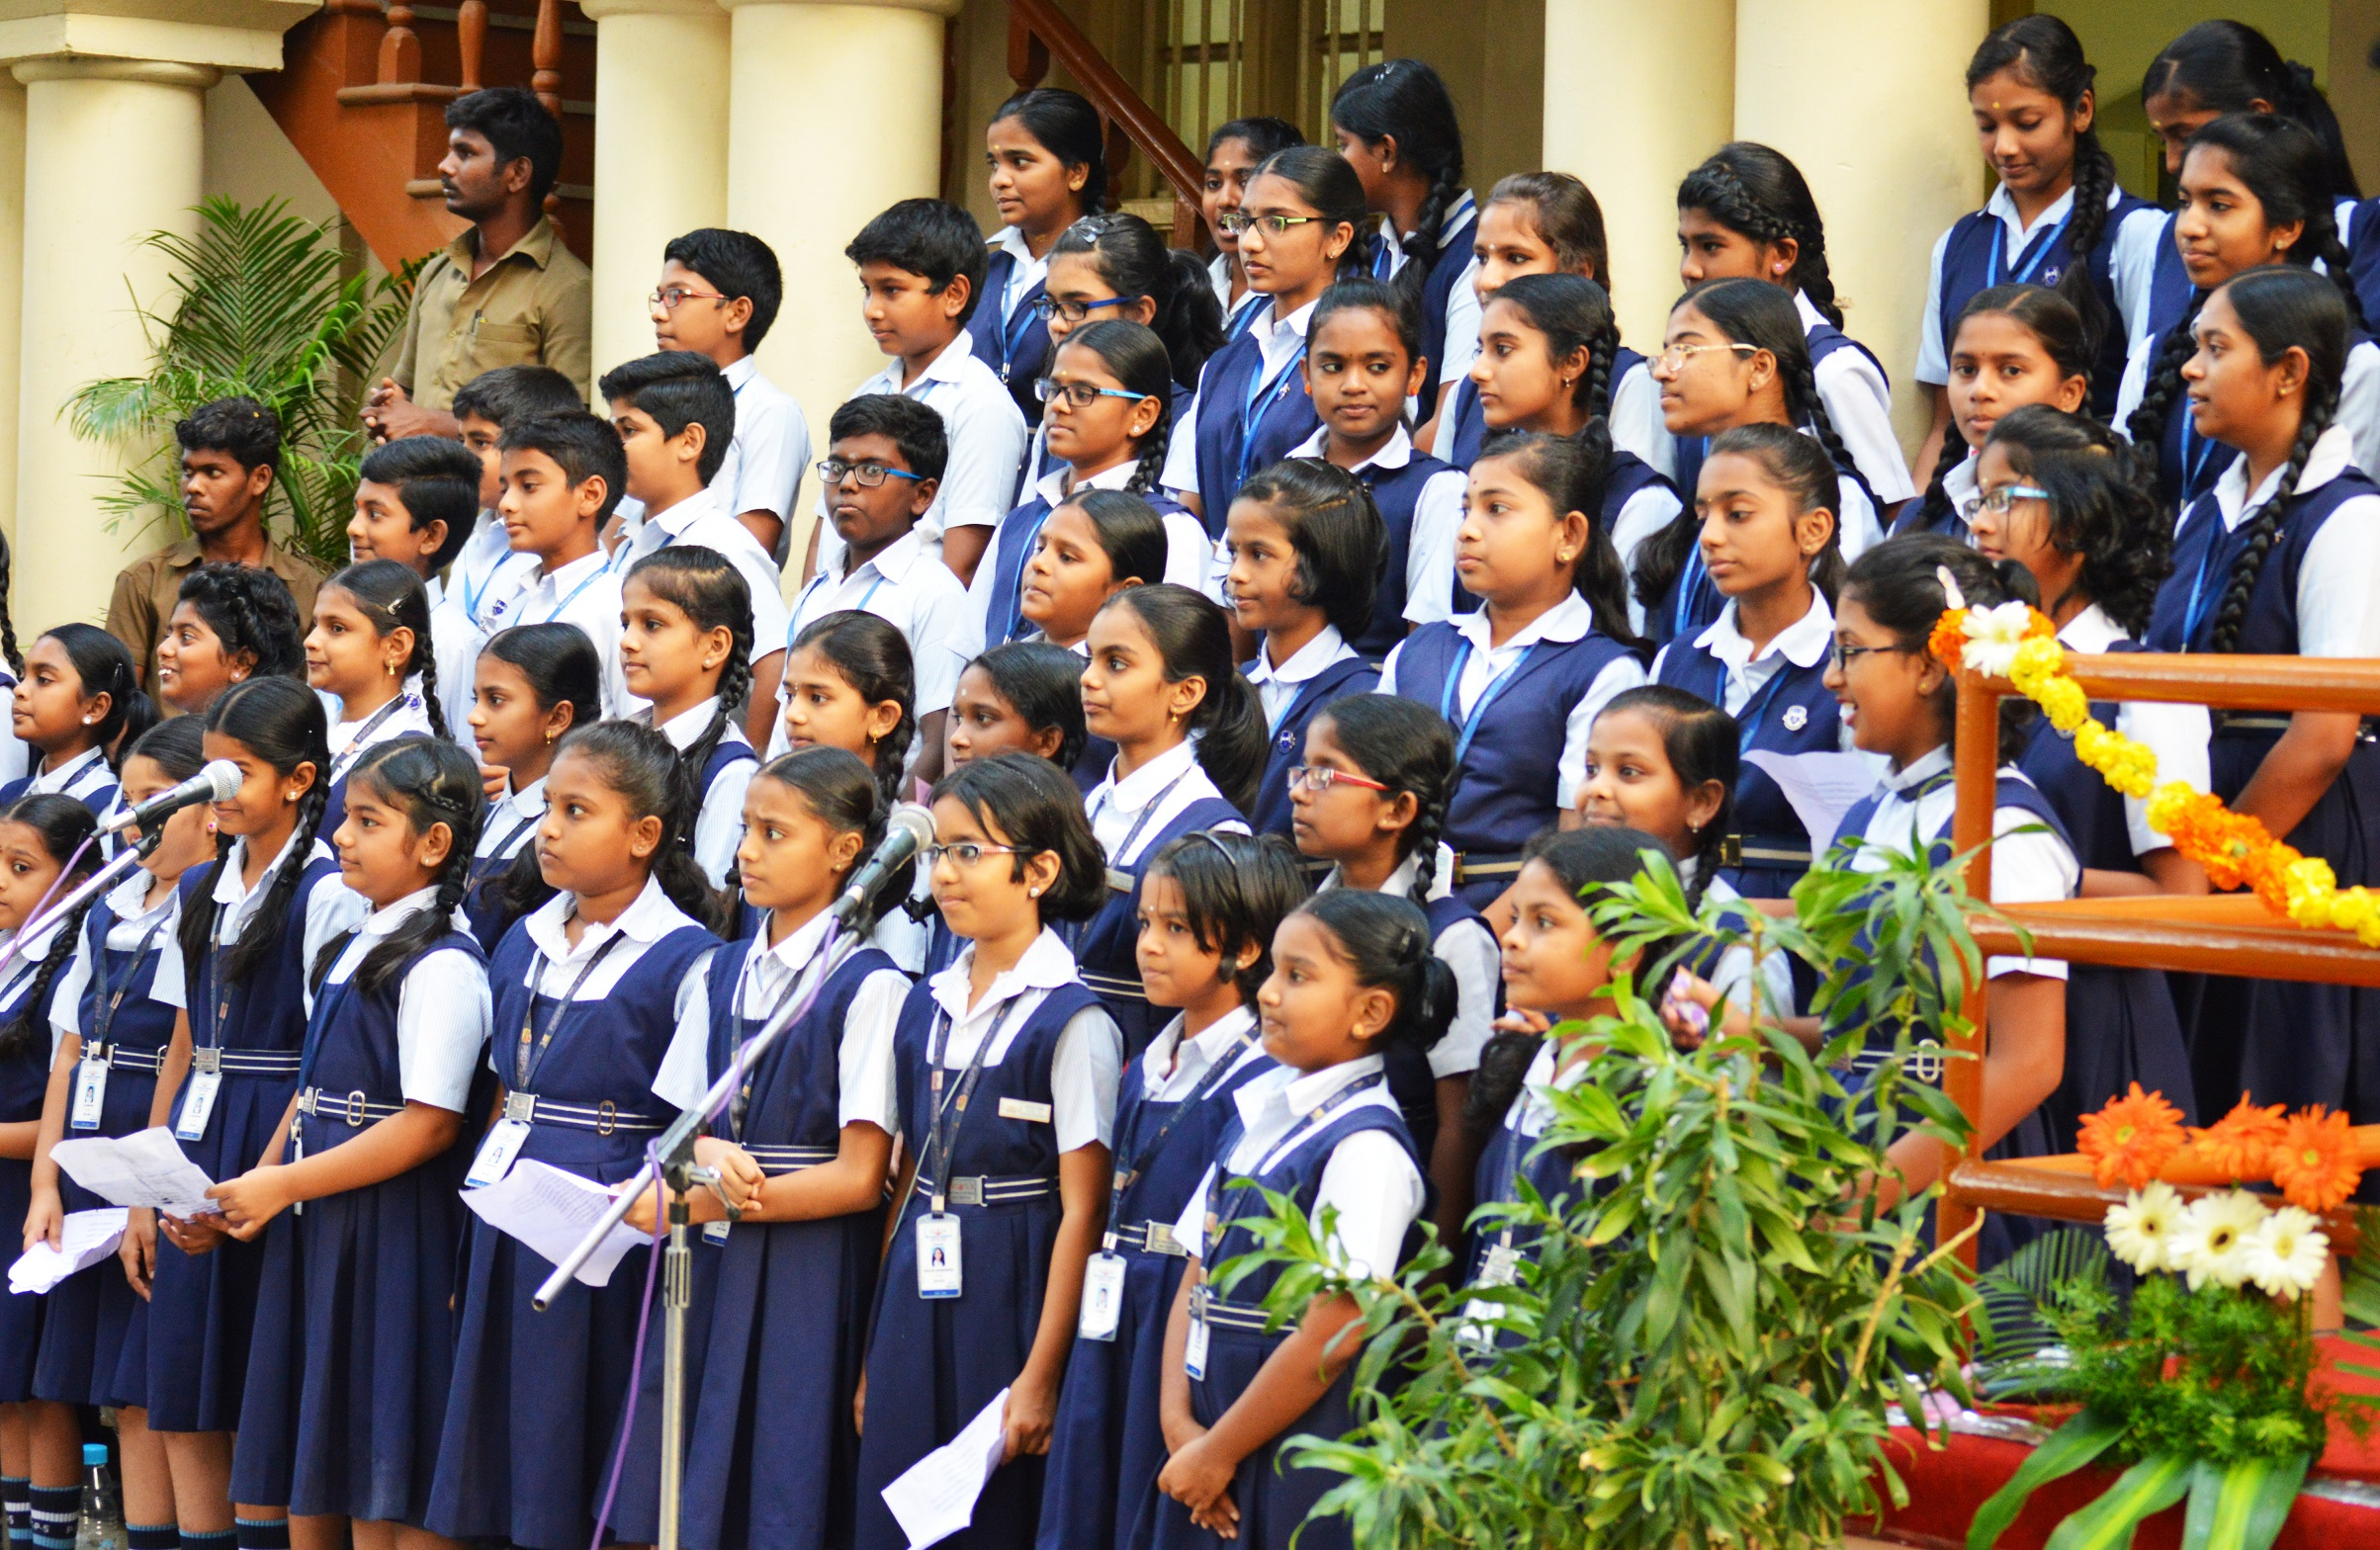 Practised school children waiting to sing for AR Rahman